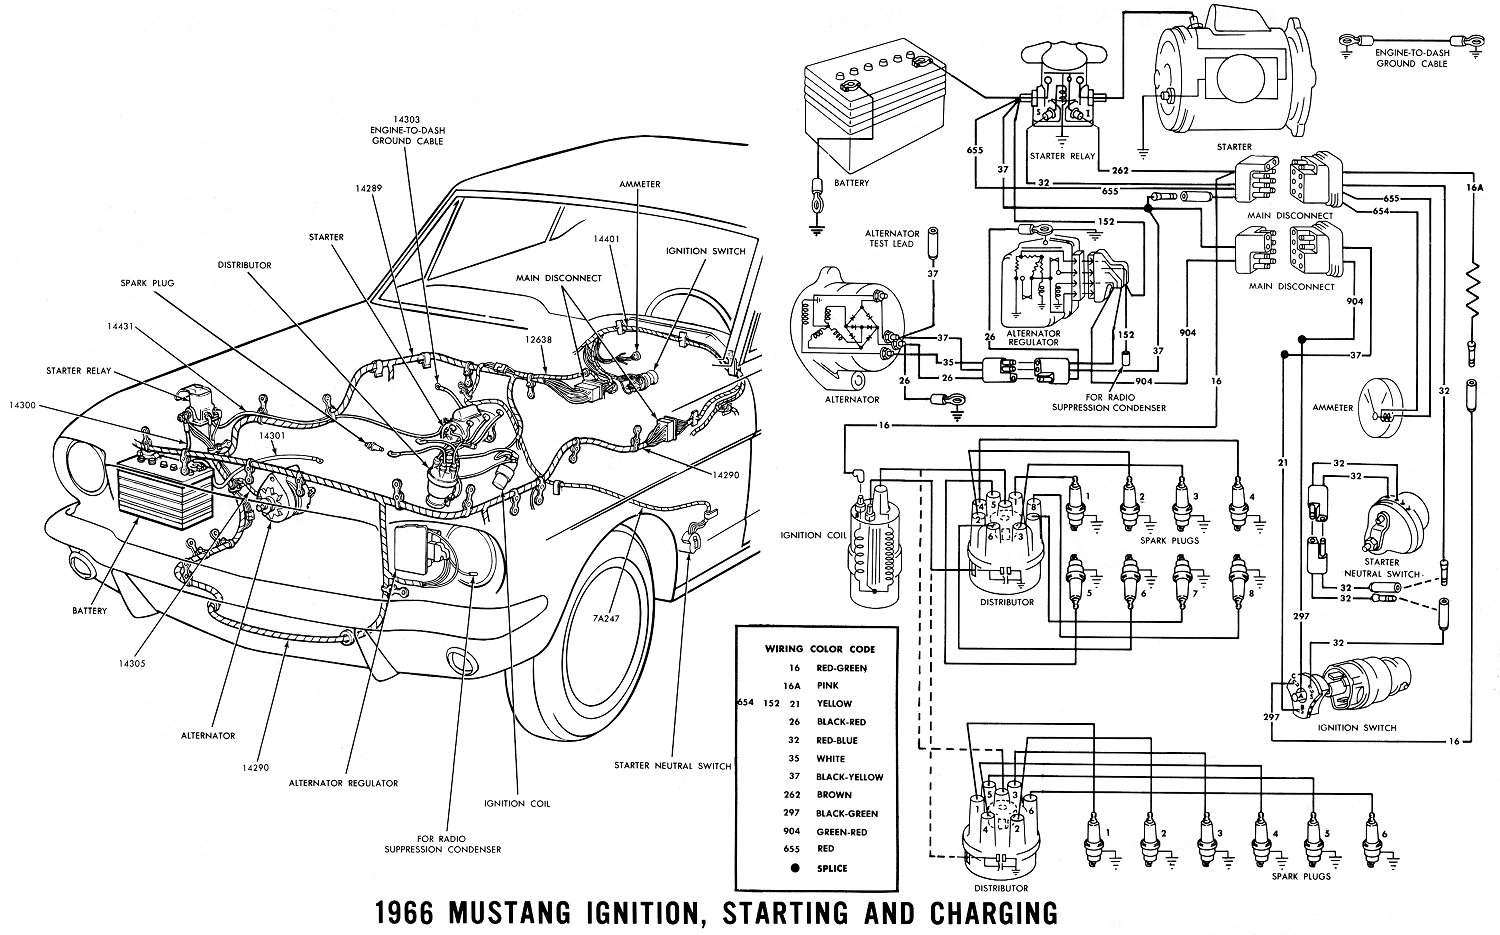 66ignit 1966 mustang wiring diagrams average joe restoration Ford E 350 Wiring Diagrams at panicattacktreatment.co